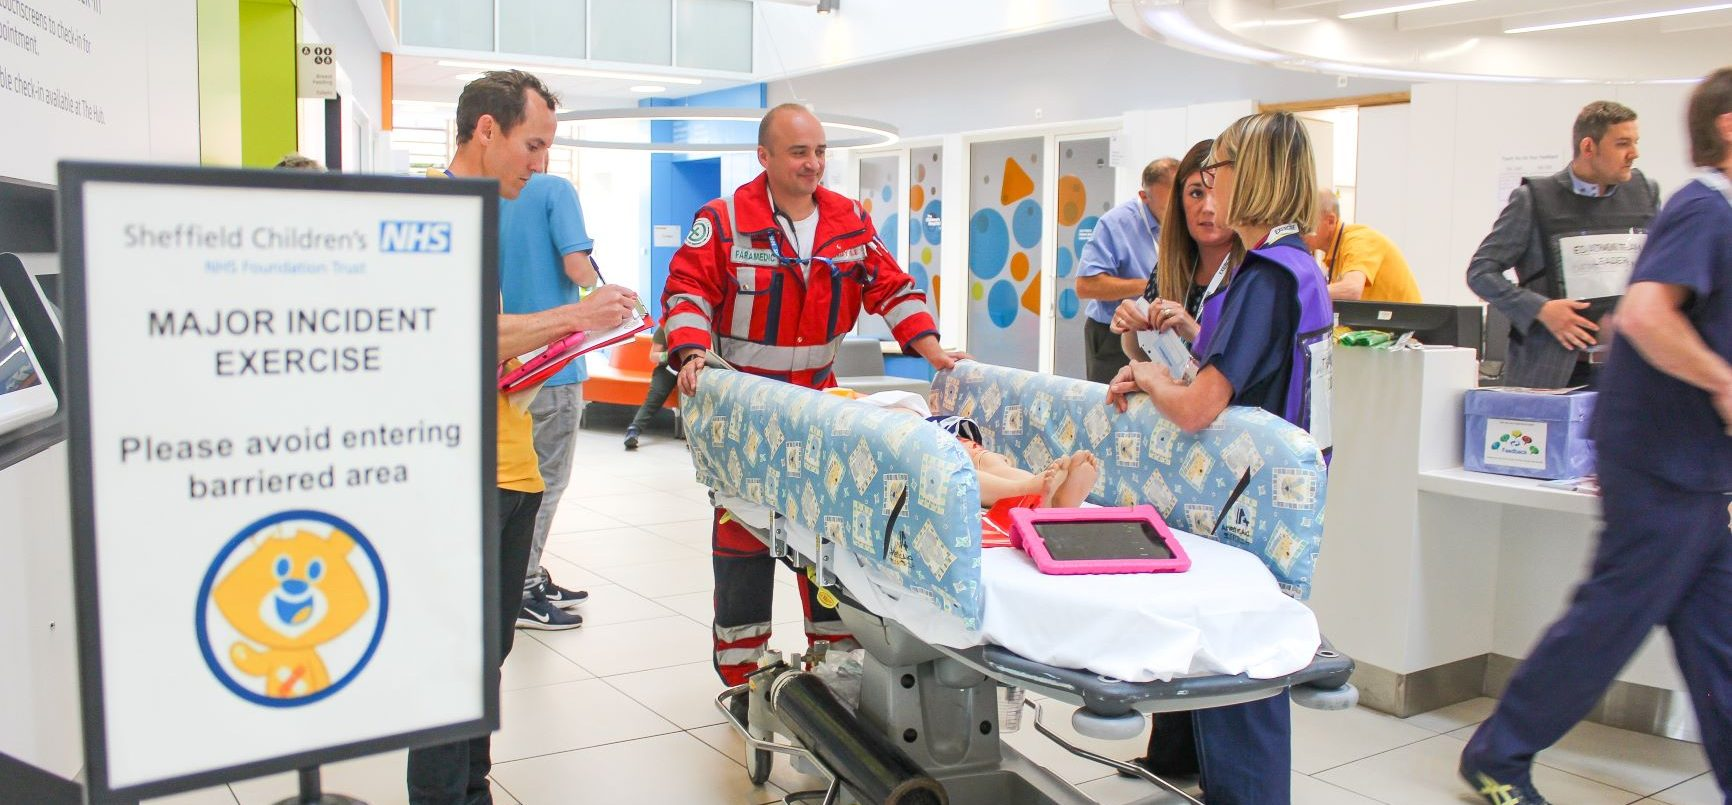 Emergency exercise at sheffield children's in outpatients